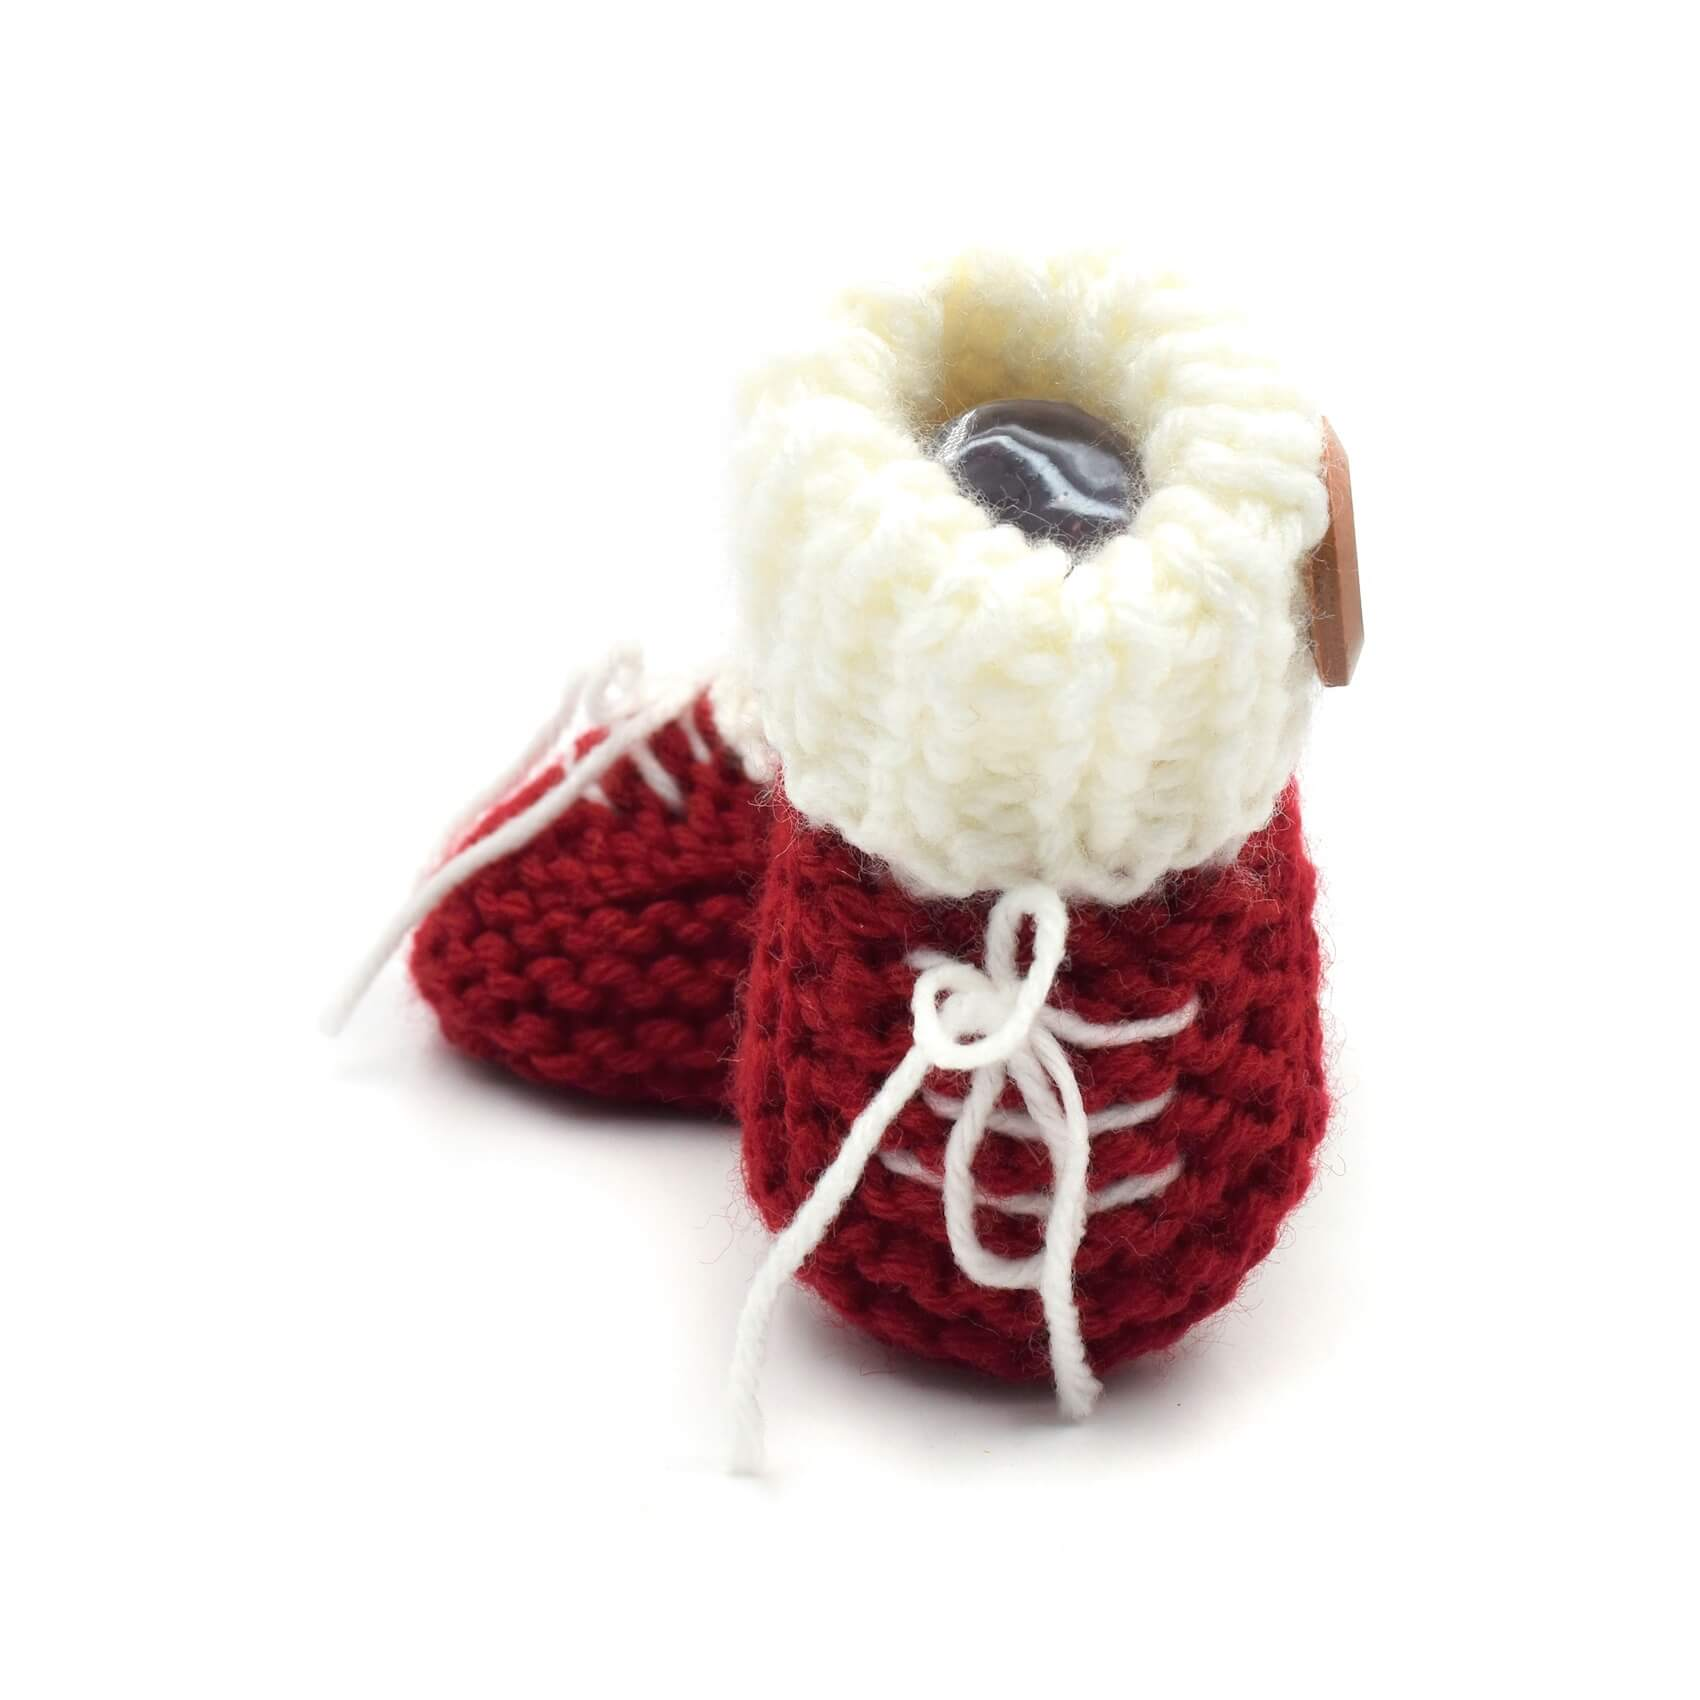 23cc0d7ffa5 Sneakers Baby Booties with Buttons - Red • Magic Needles ...